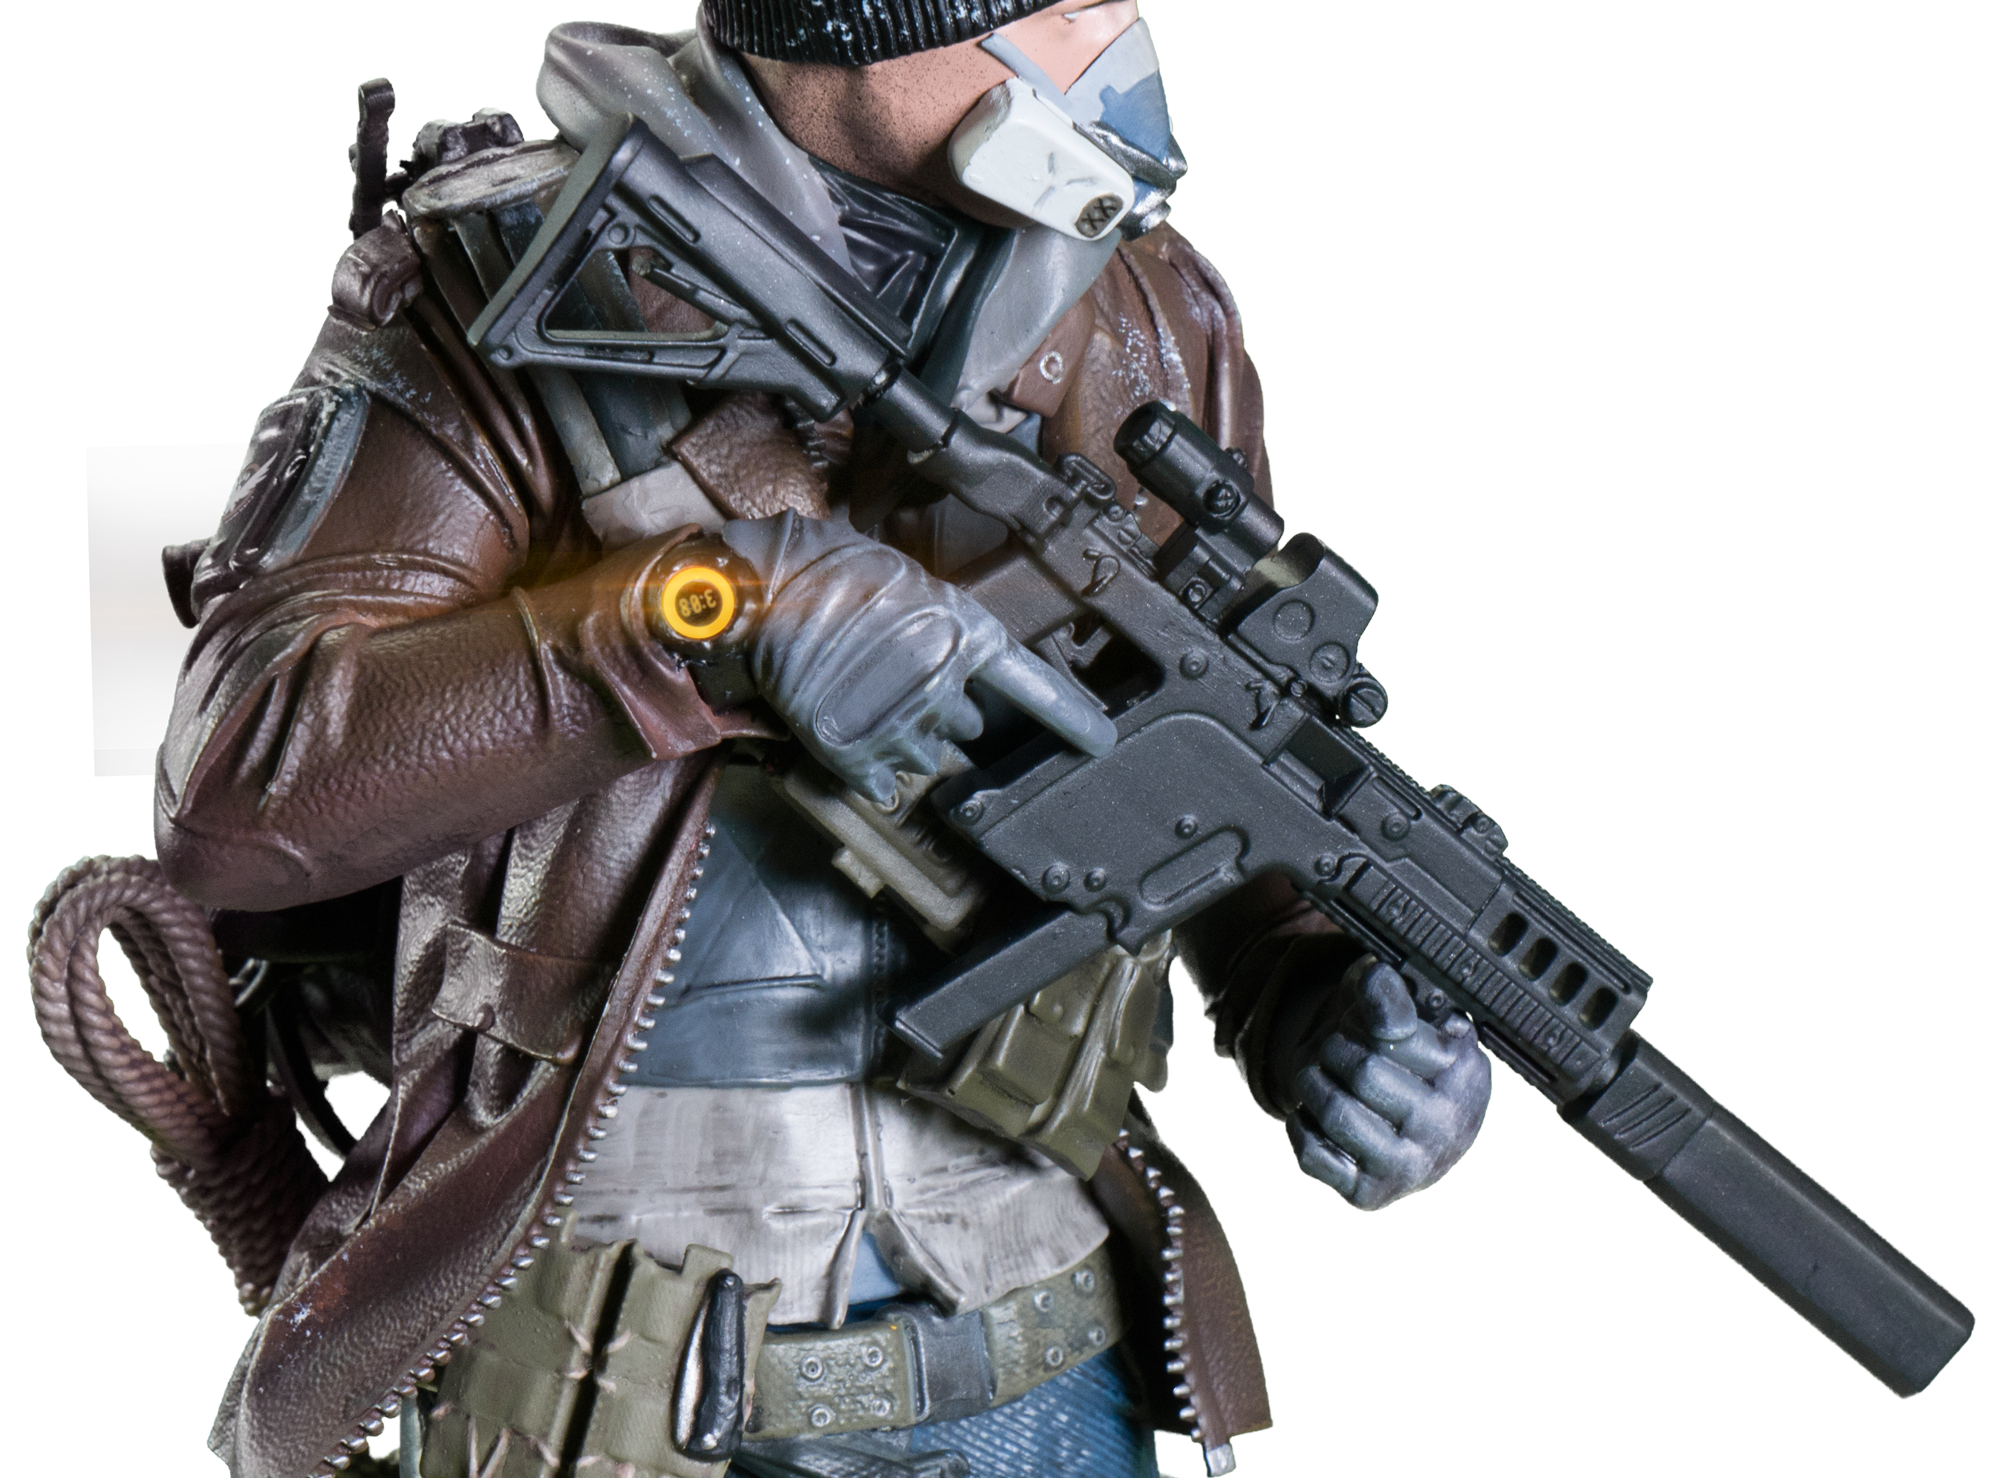 Ubisoft annuncia due nuove action figures per The Division e Ghost Recon Wildlands